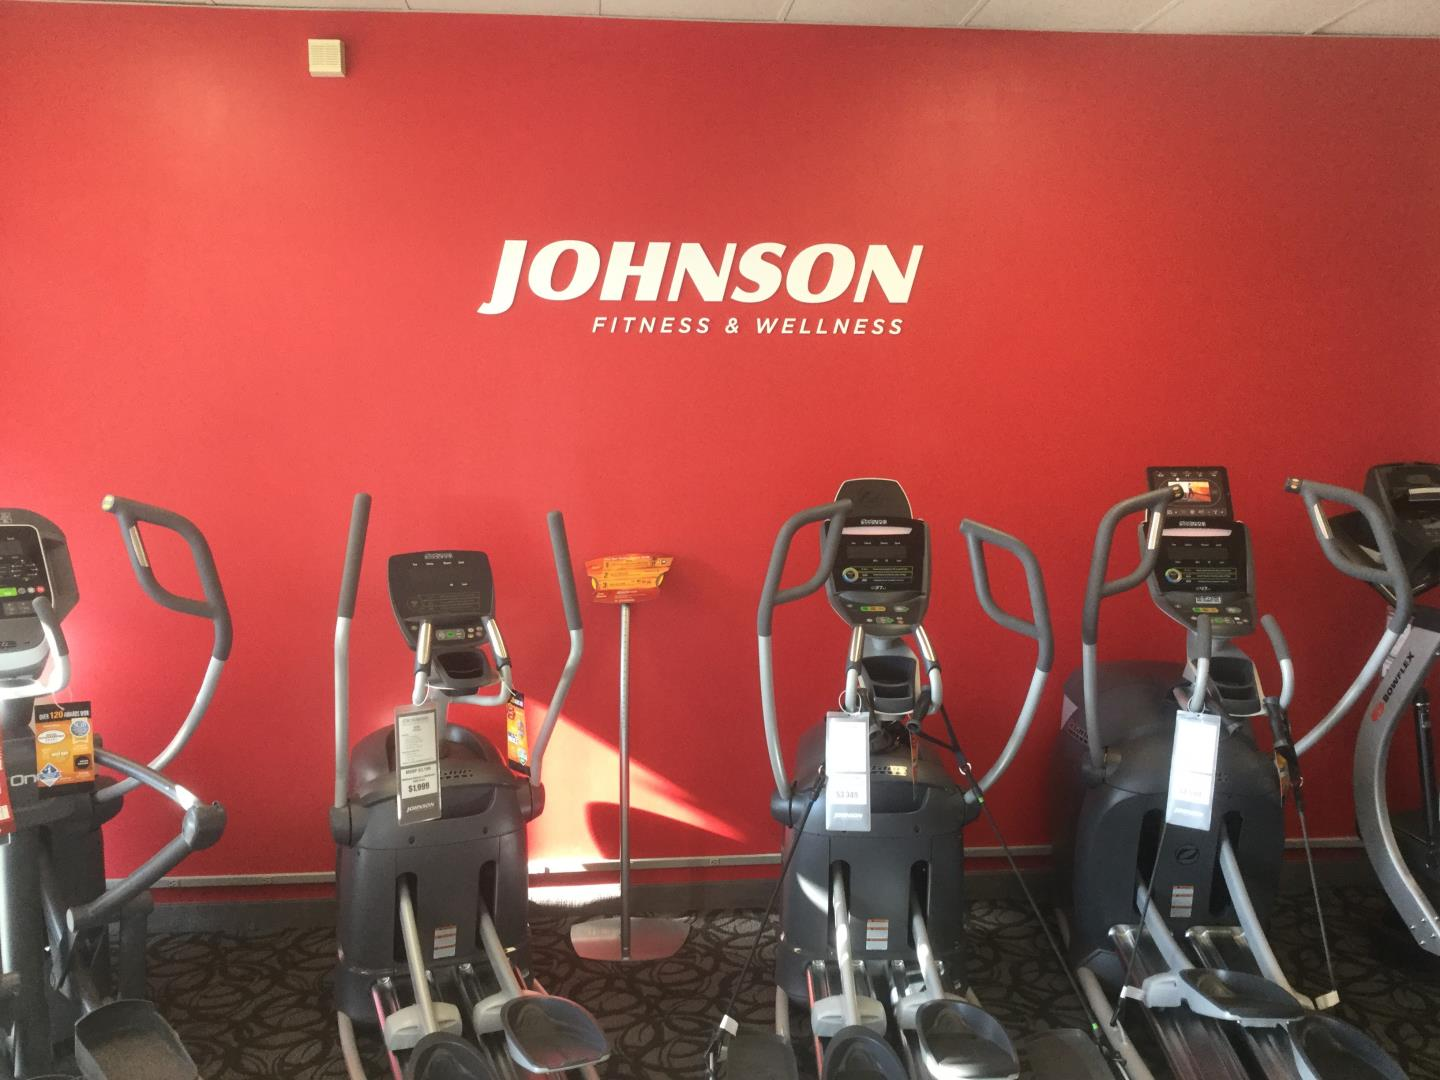 Johnson Fitness & Wellness - Greenfield, WI